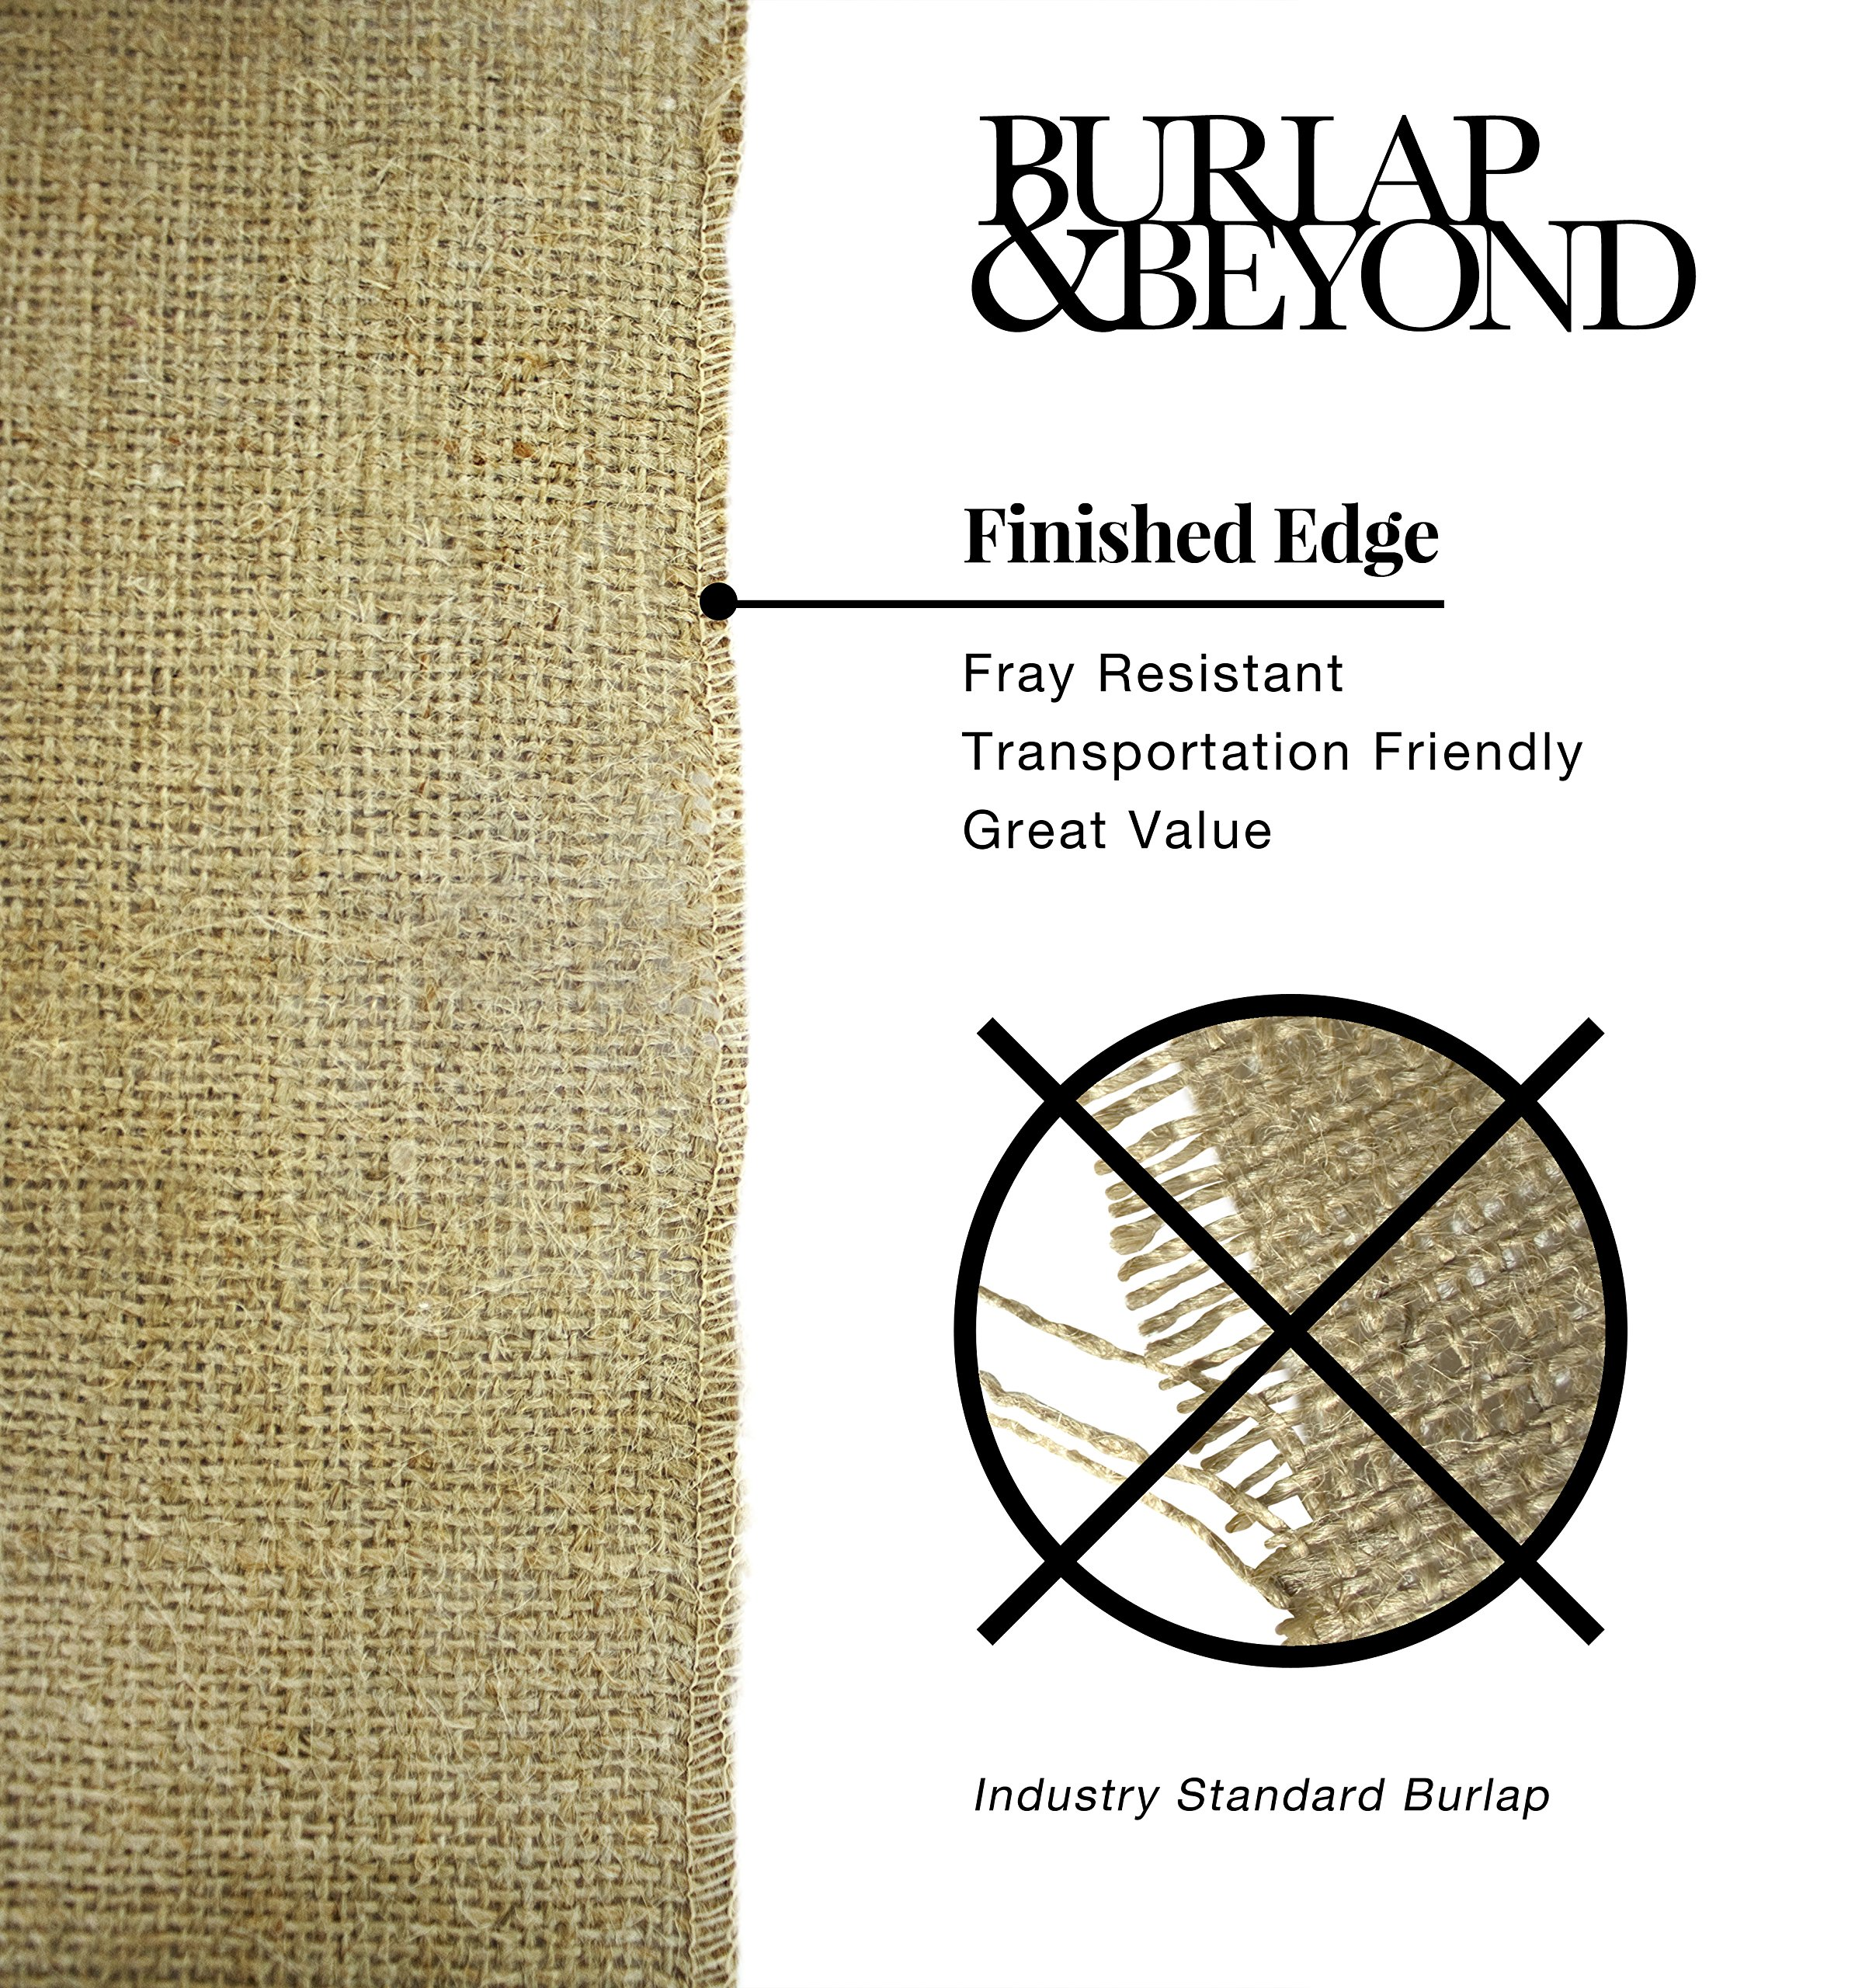 14'' No-Fray Burlap Roll Table Runner, 14 inches by 50 Yards, Placemat, Craft Fabric by Burlap and Beyond LLC (Image #3)